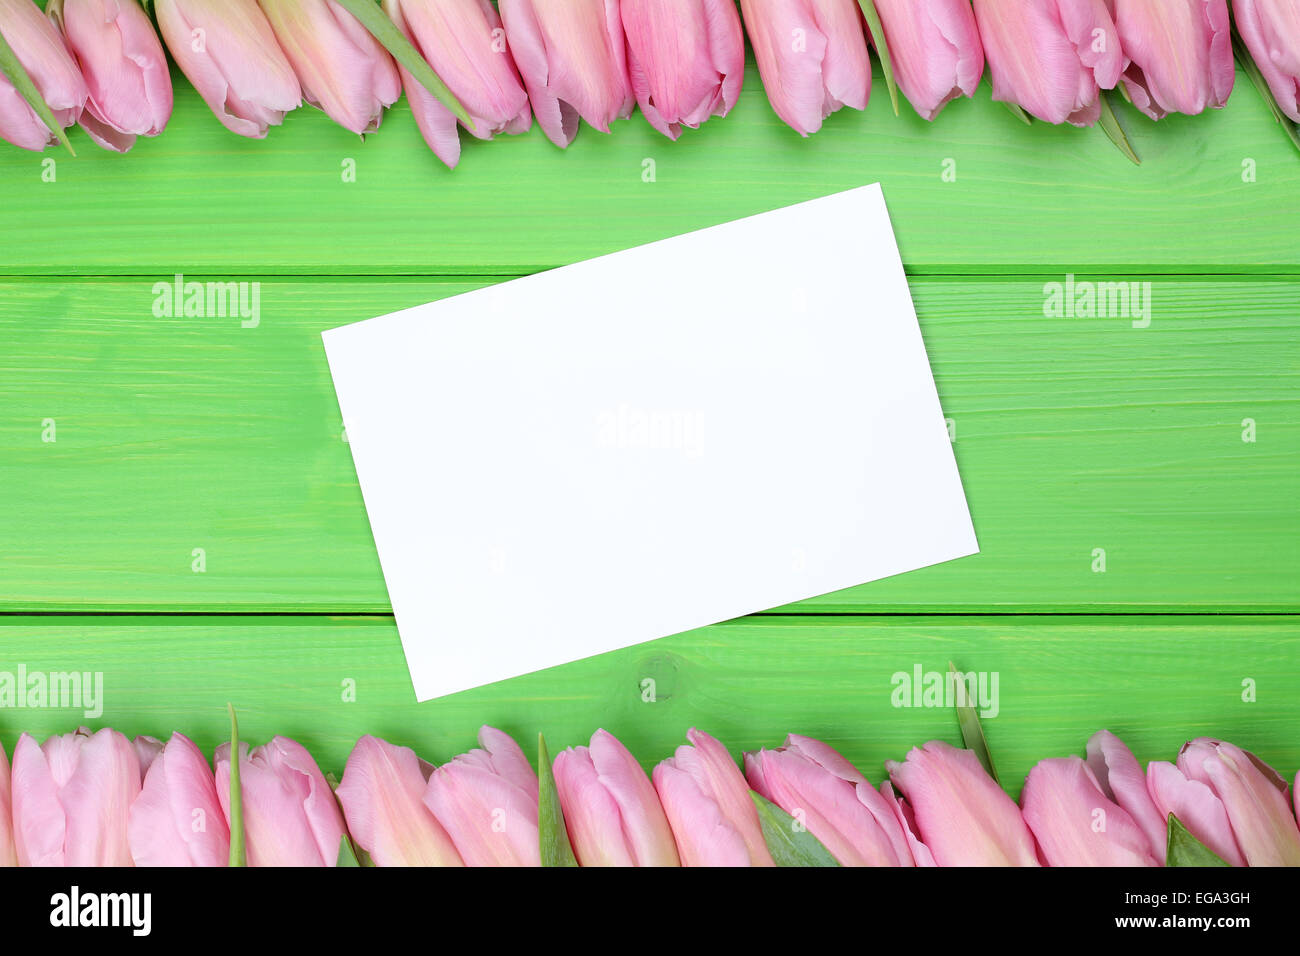 Frame from tulips flowers in spring or mothers day with greeting card and copyspace for your own text - Stock Image